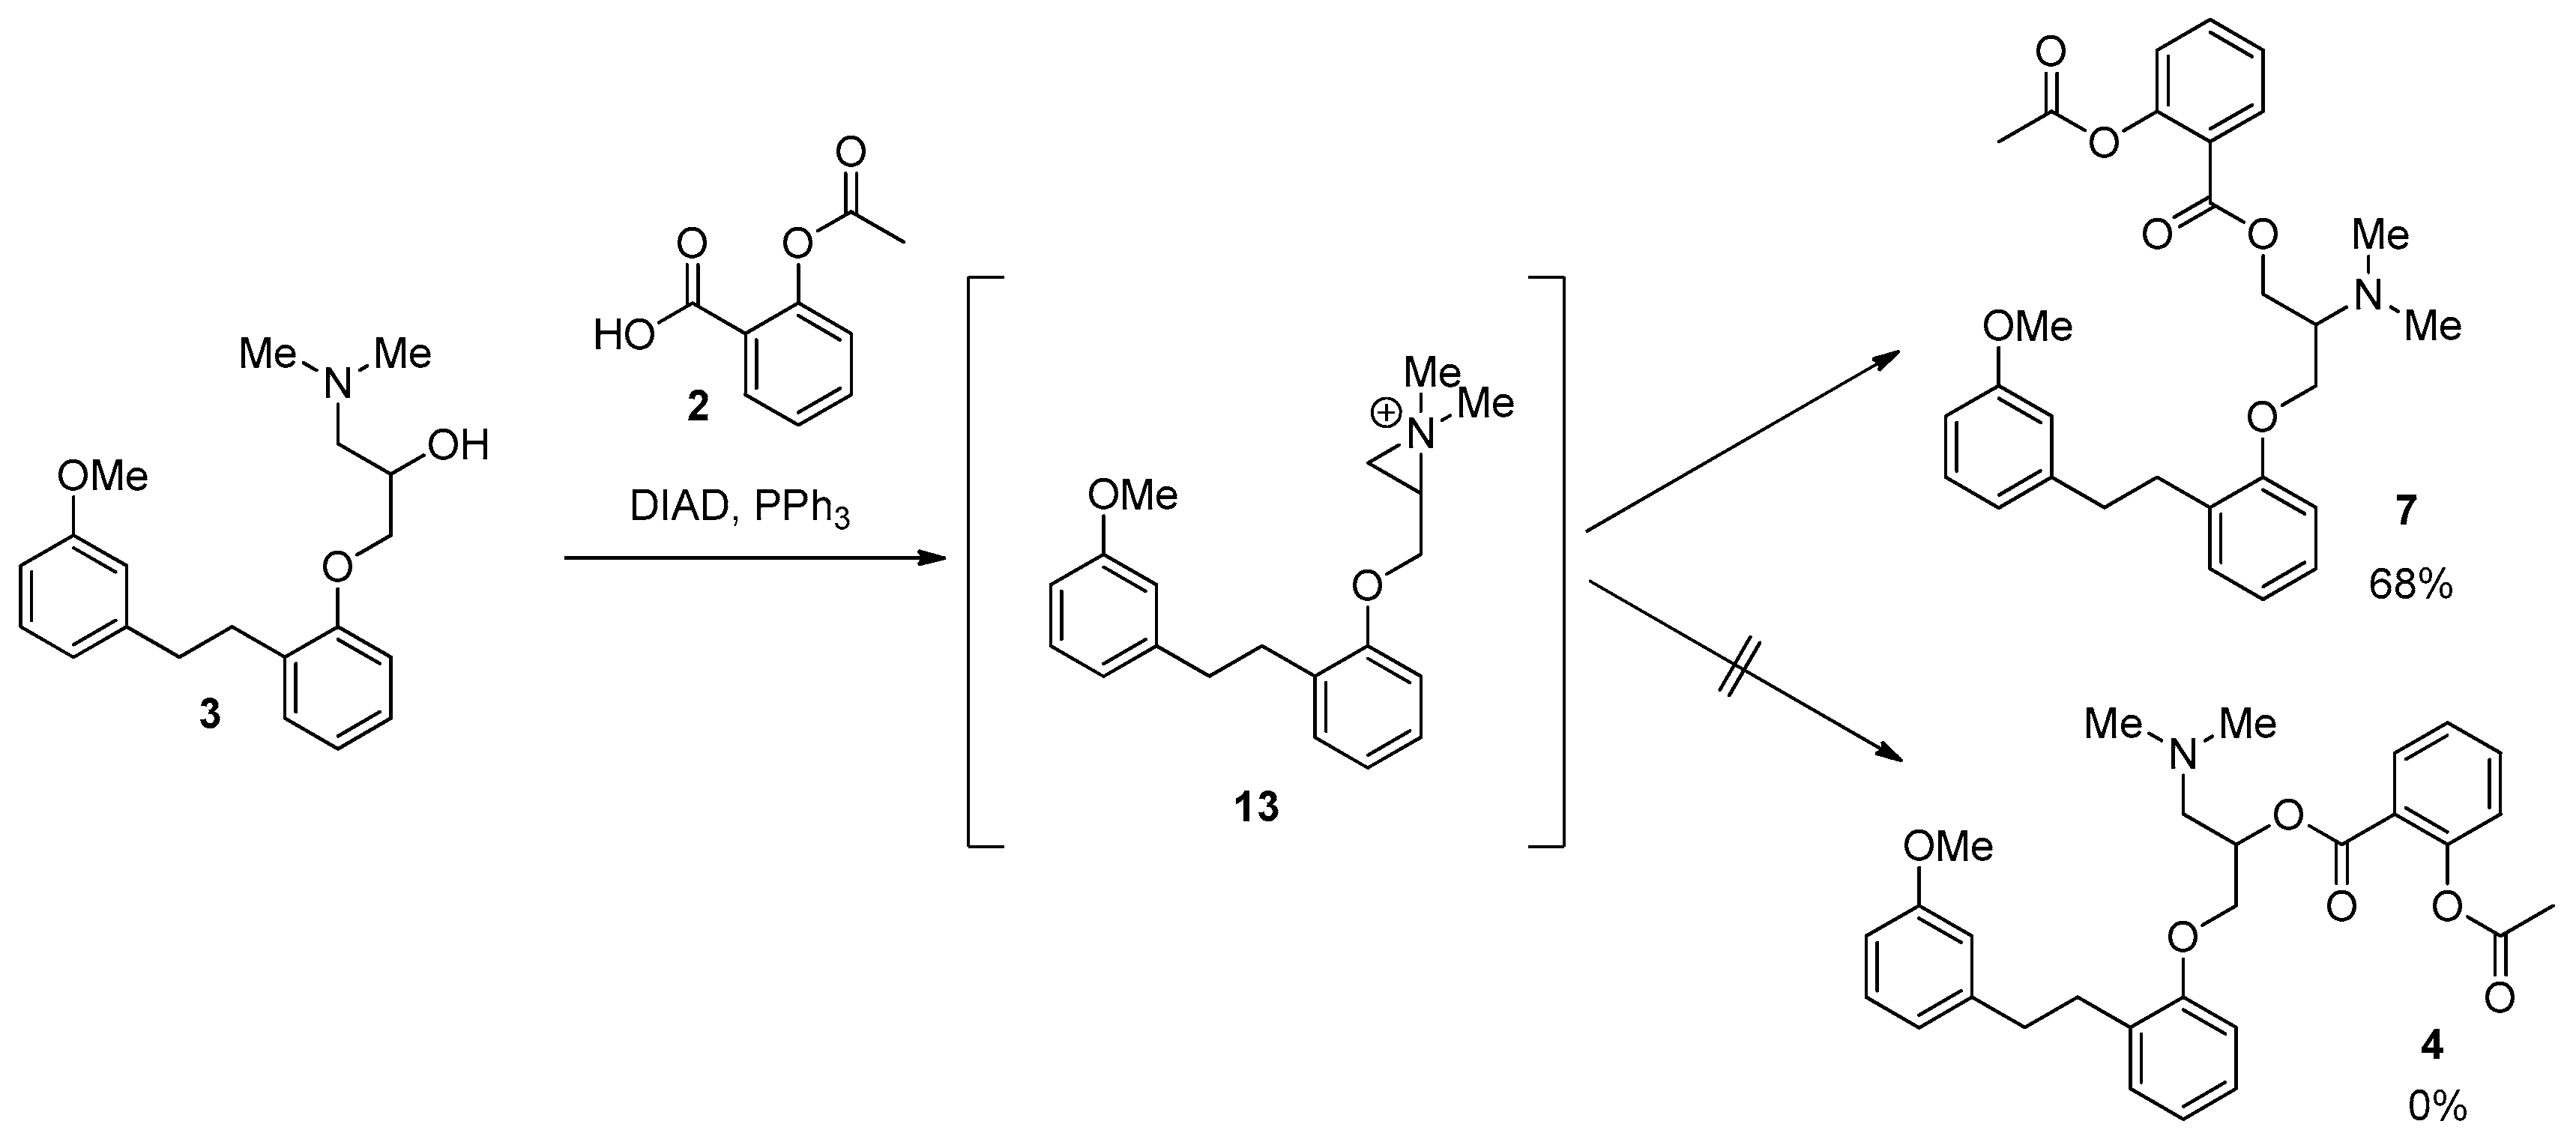 Chemical Equation Synthesis Of Aspirin From Acetyl